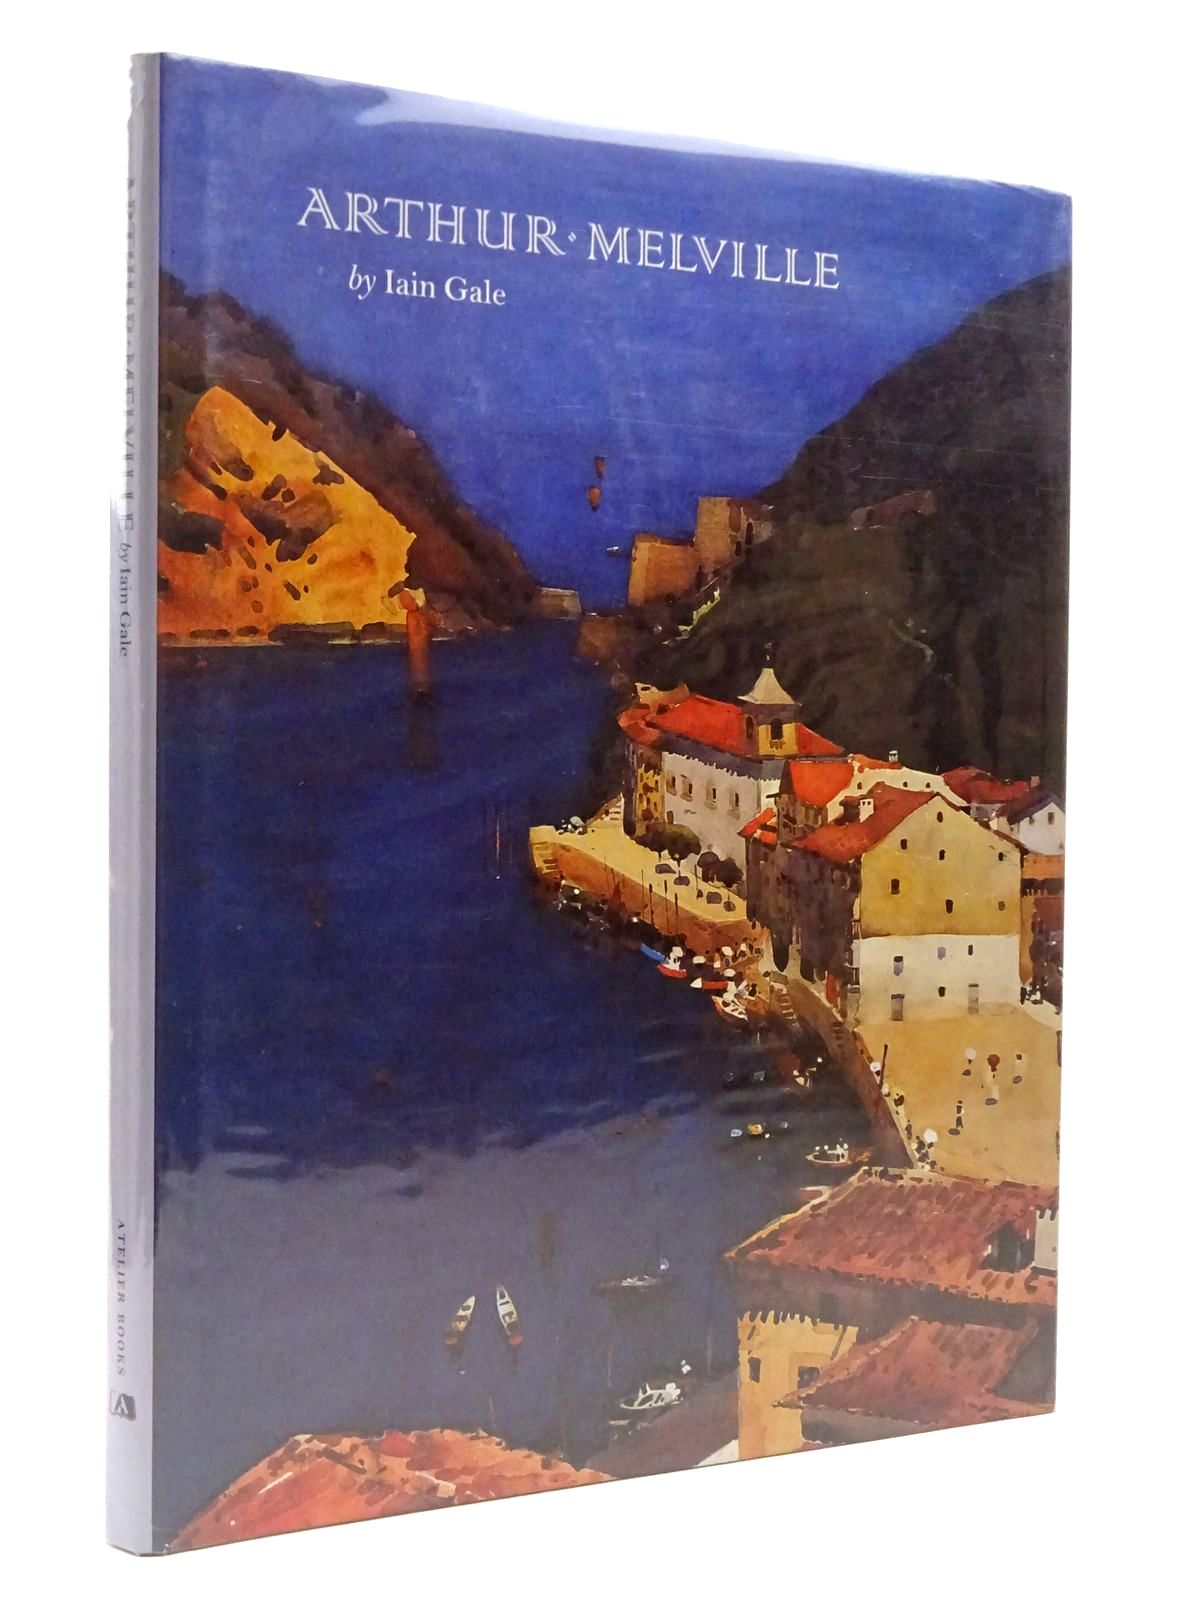 Photo of ARTHUR MELVILLE written by Gale, Iain illustrated by Melville, Arthur published by Atelier Books (STOCK CODE: 2129564)  for sale by Stella & Rose's Books